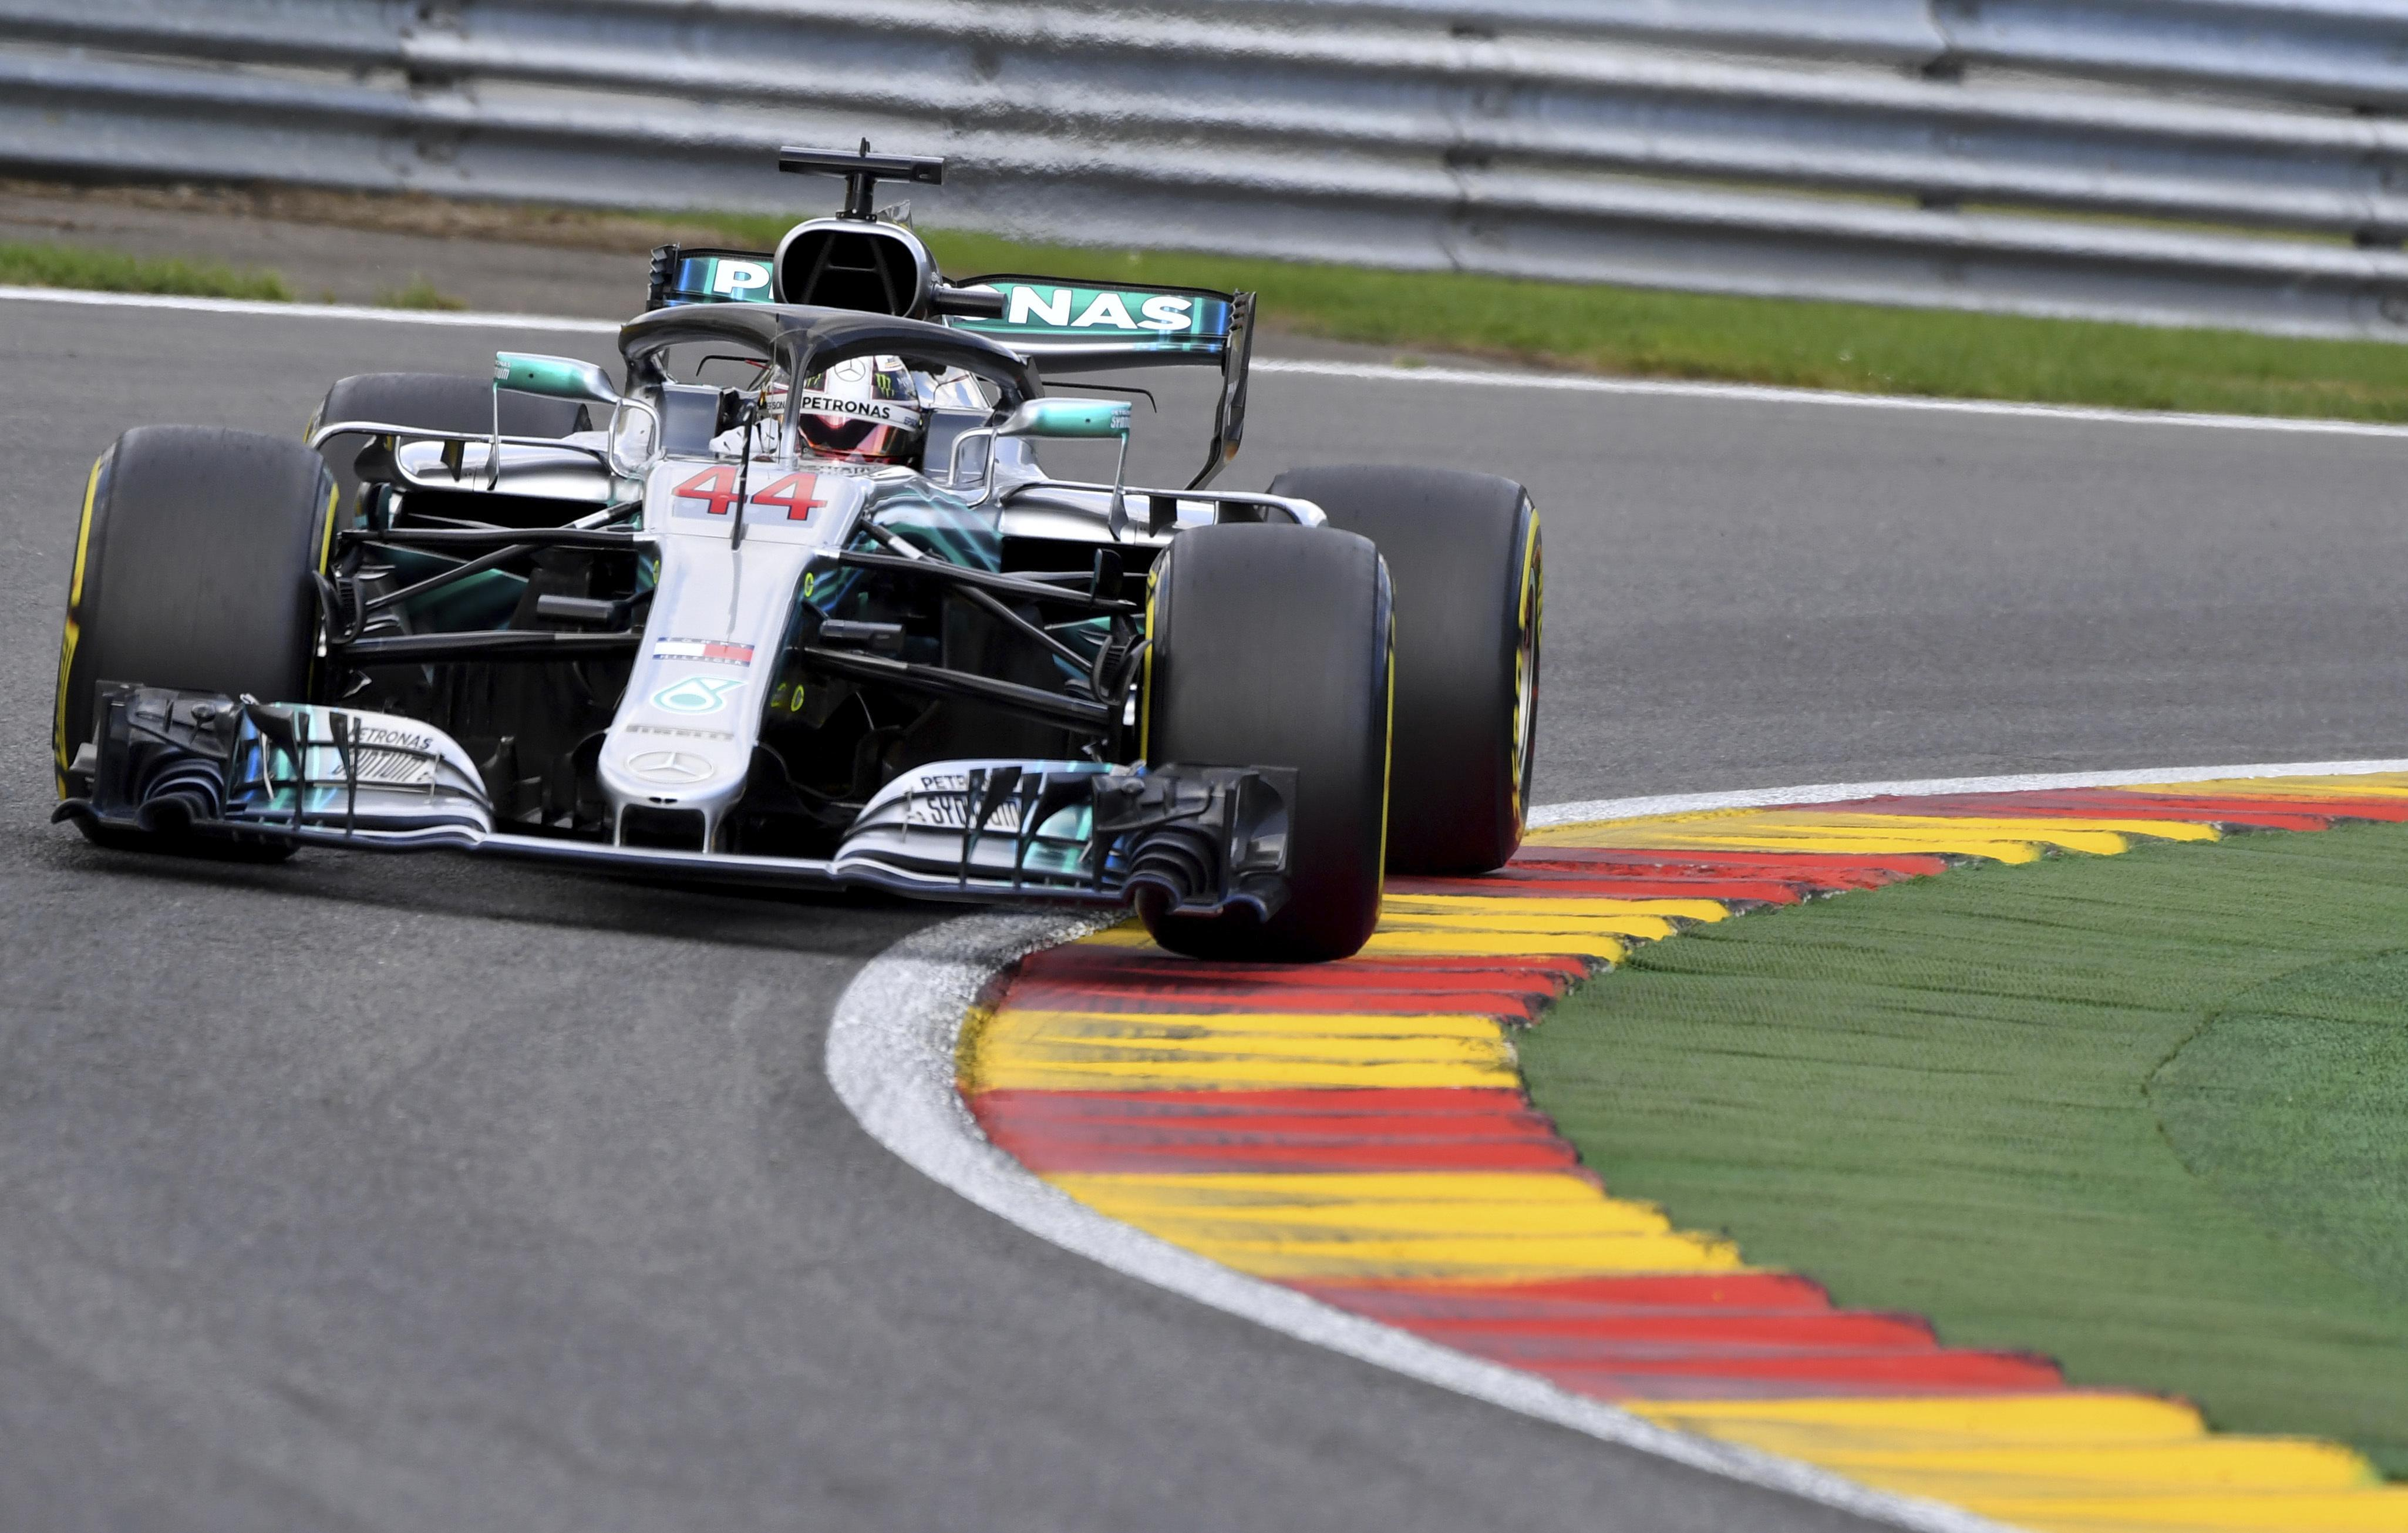 Hamilton leads the drivers' championship by 24 points from Sebastian Vettel